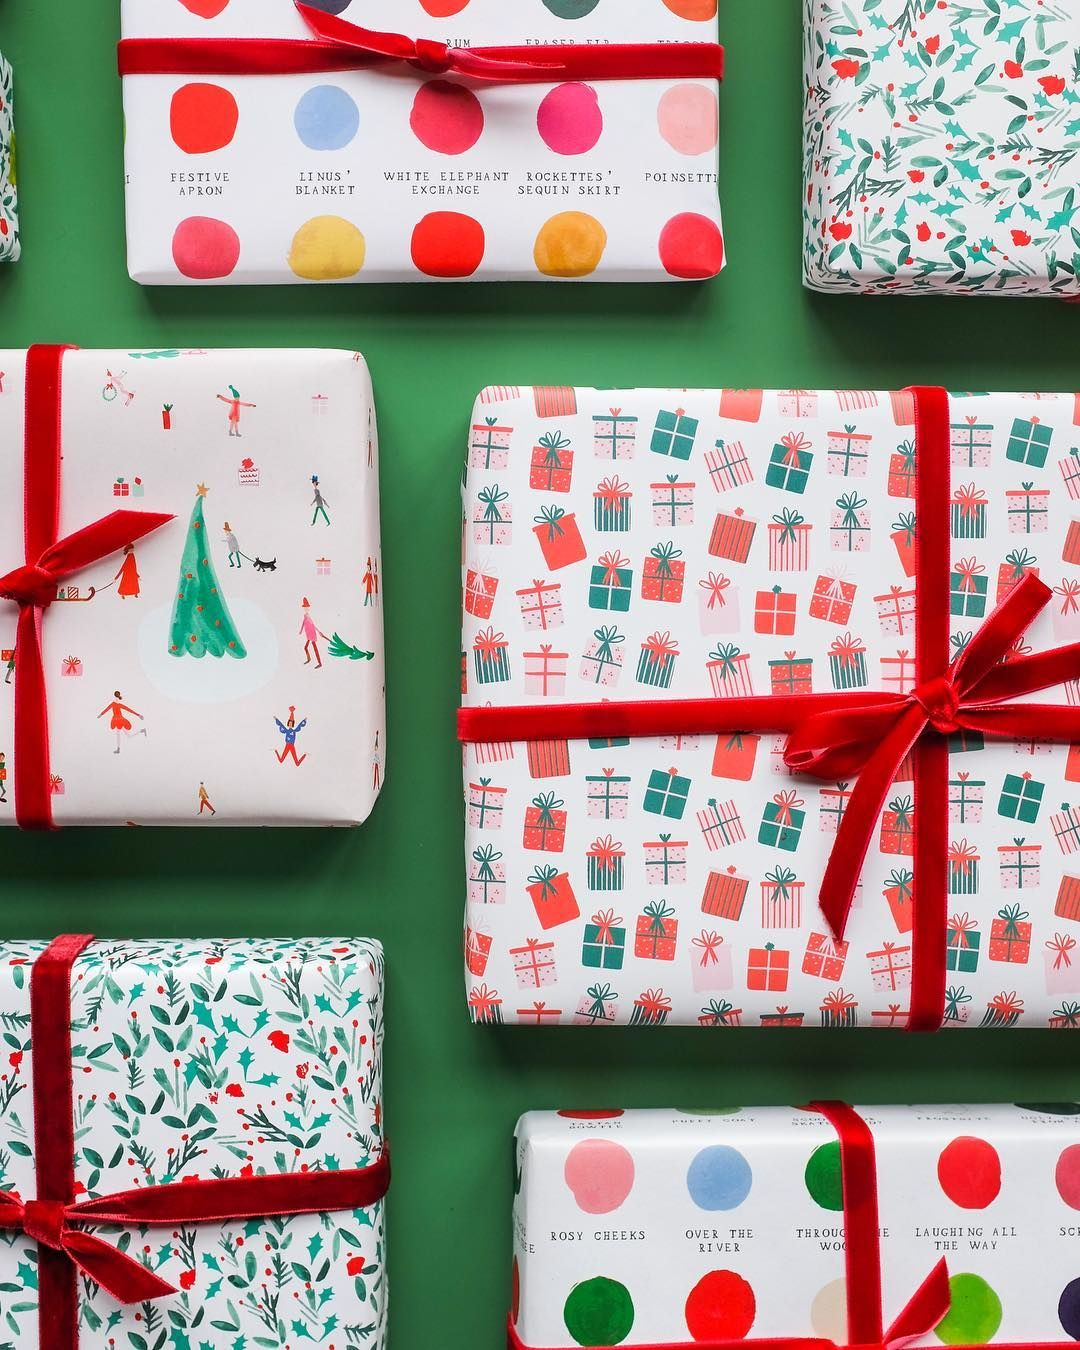 Mr Boddington S Studio On Instagram Now Where Are Those Dodgy Scissors Stock Up On Gift Wrap During Mr Boddingt Gifts Gift Wrapping Holiday Wrapping Paper